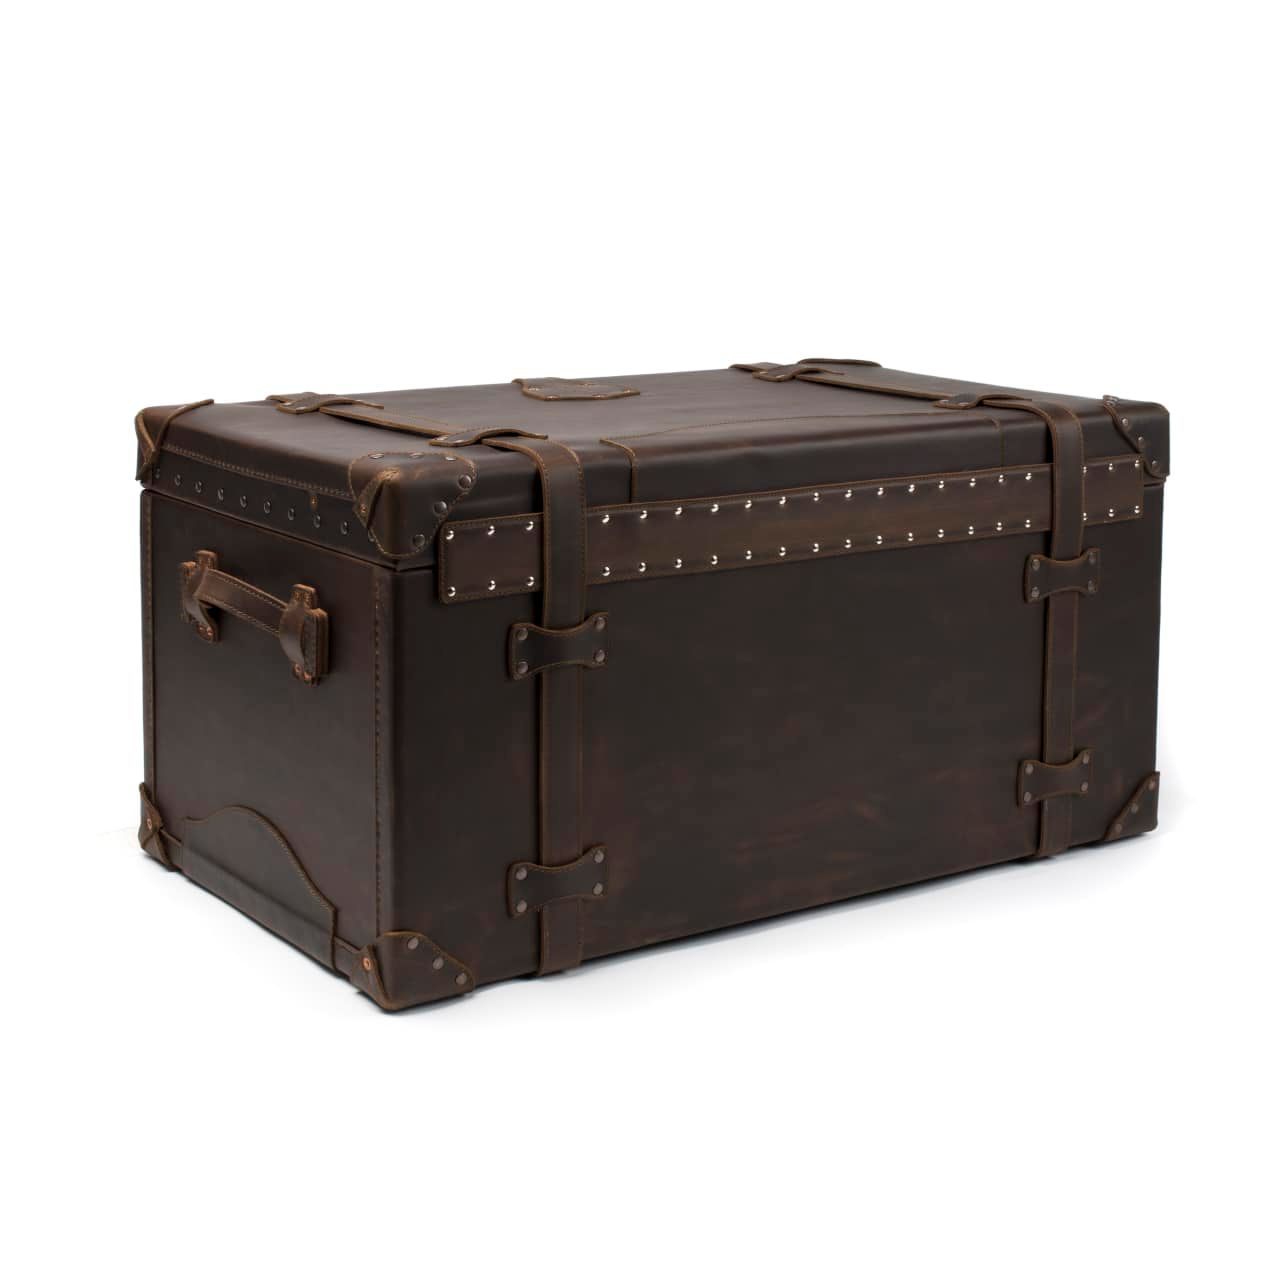 Leather Trunk in color Dark Coffee Brown shown from the Back at an Angle